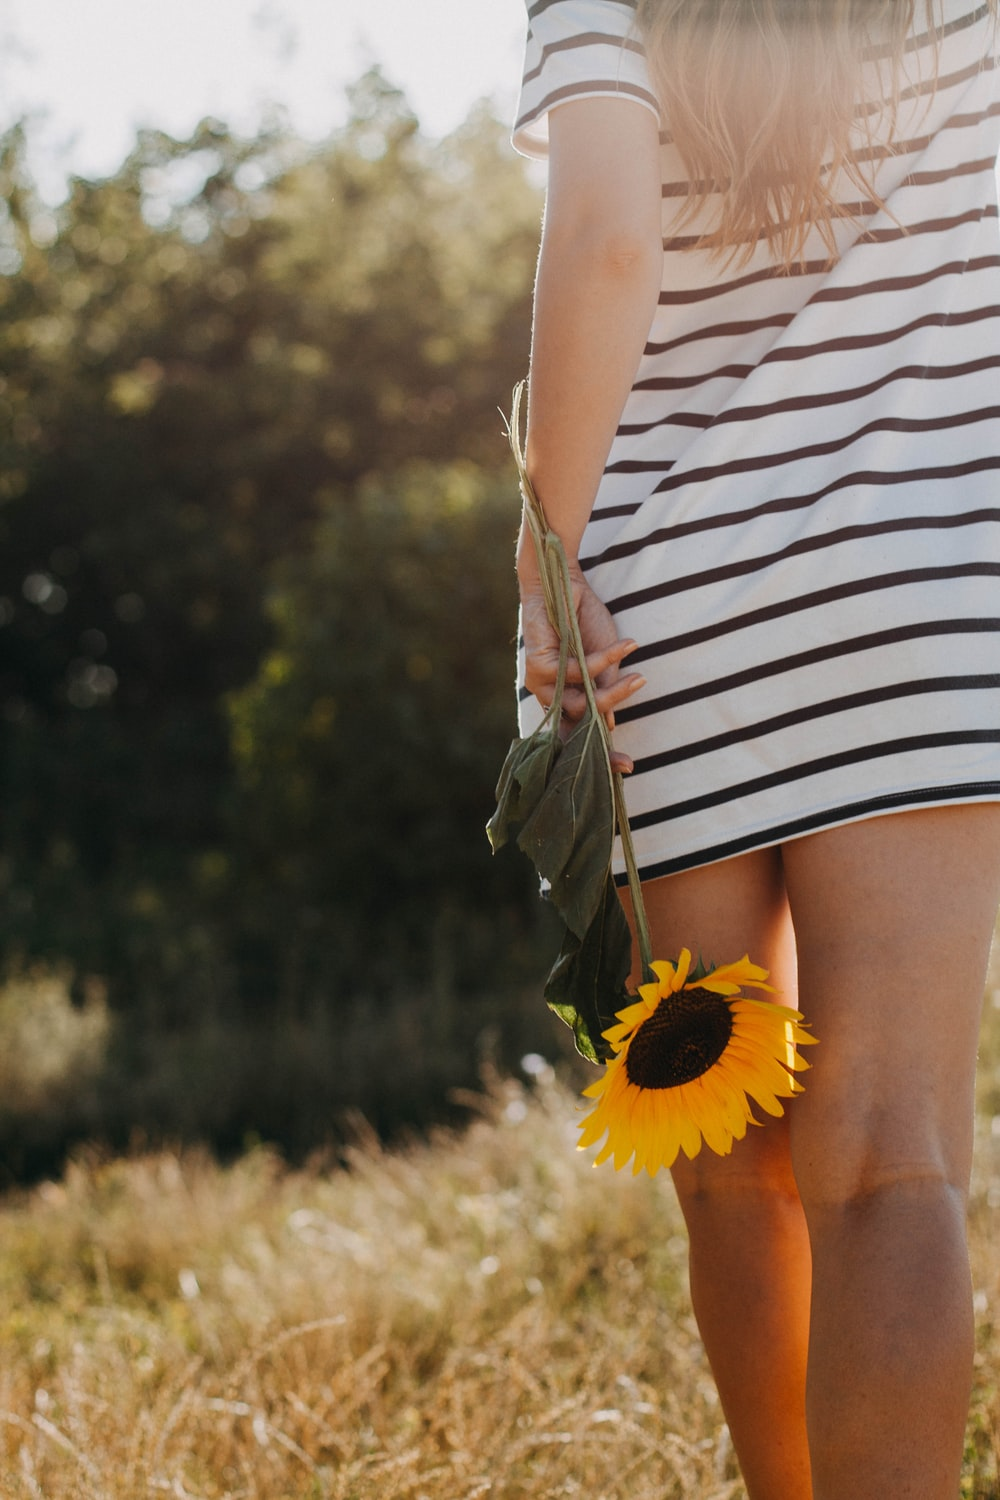 woman holding sunflower while walking